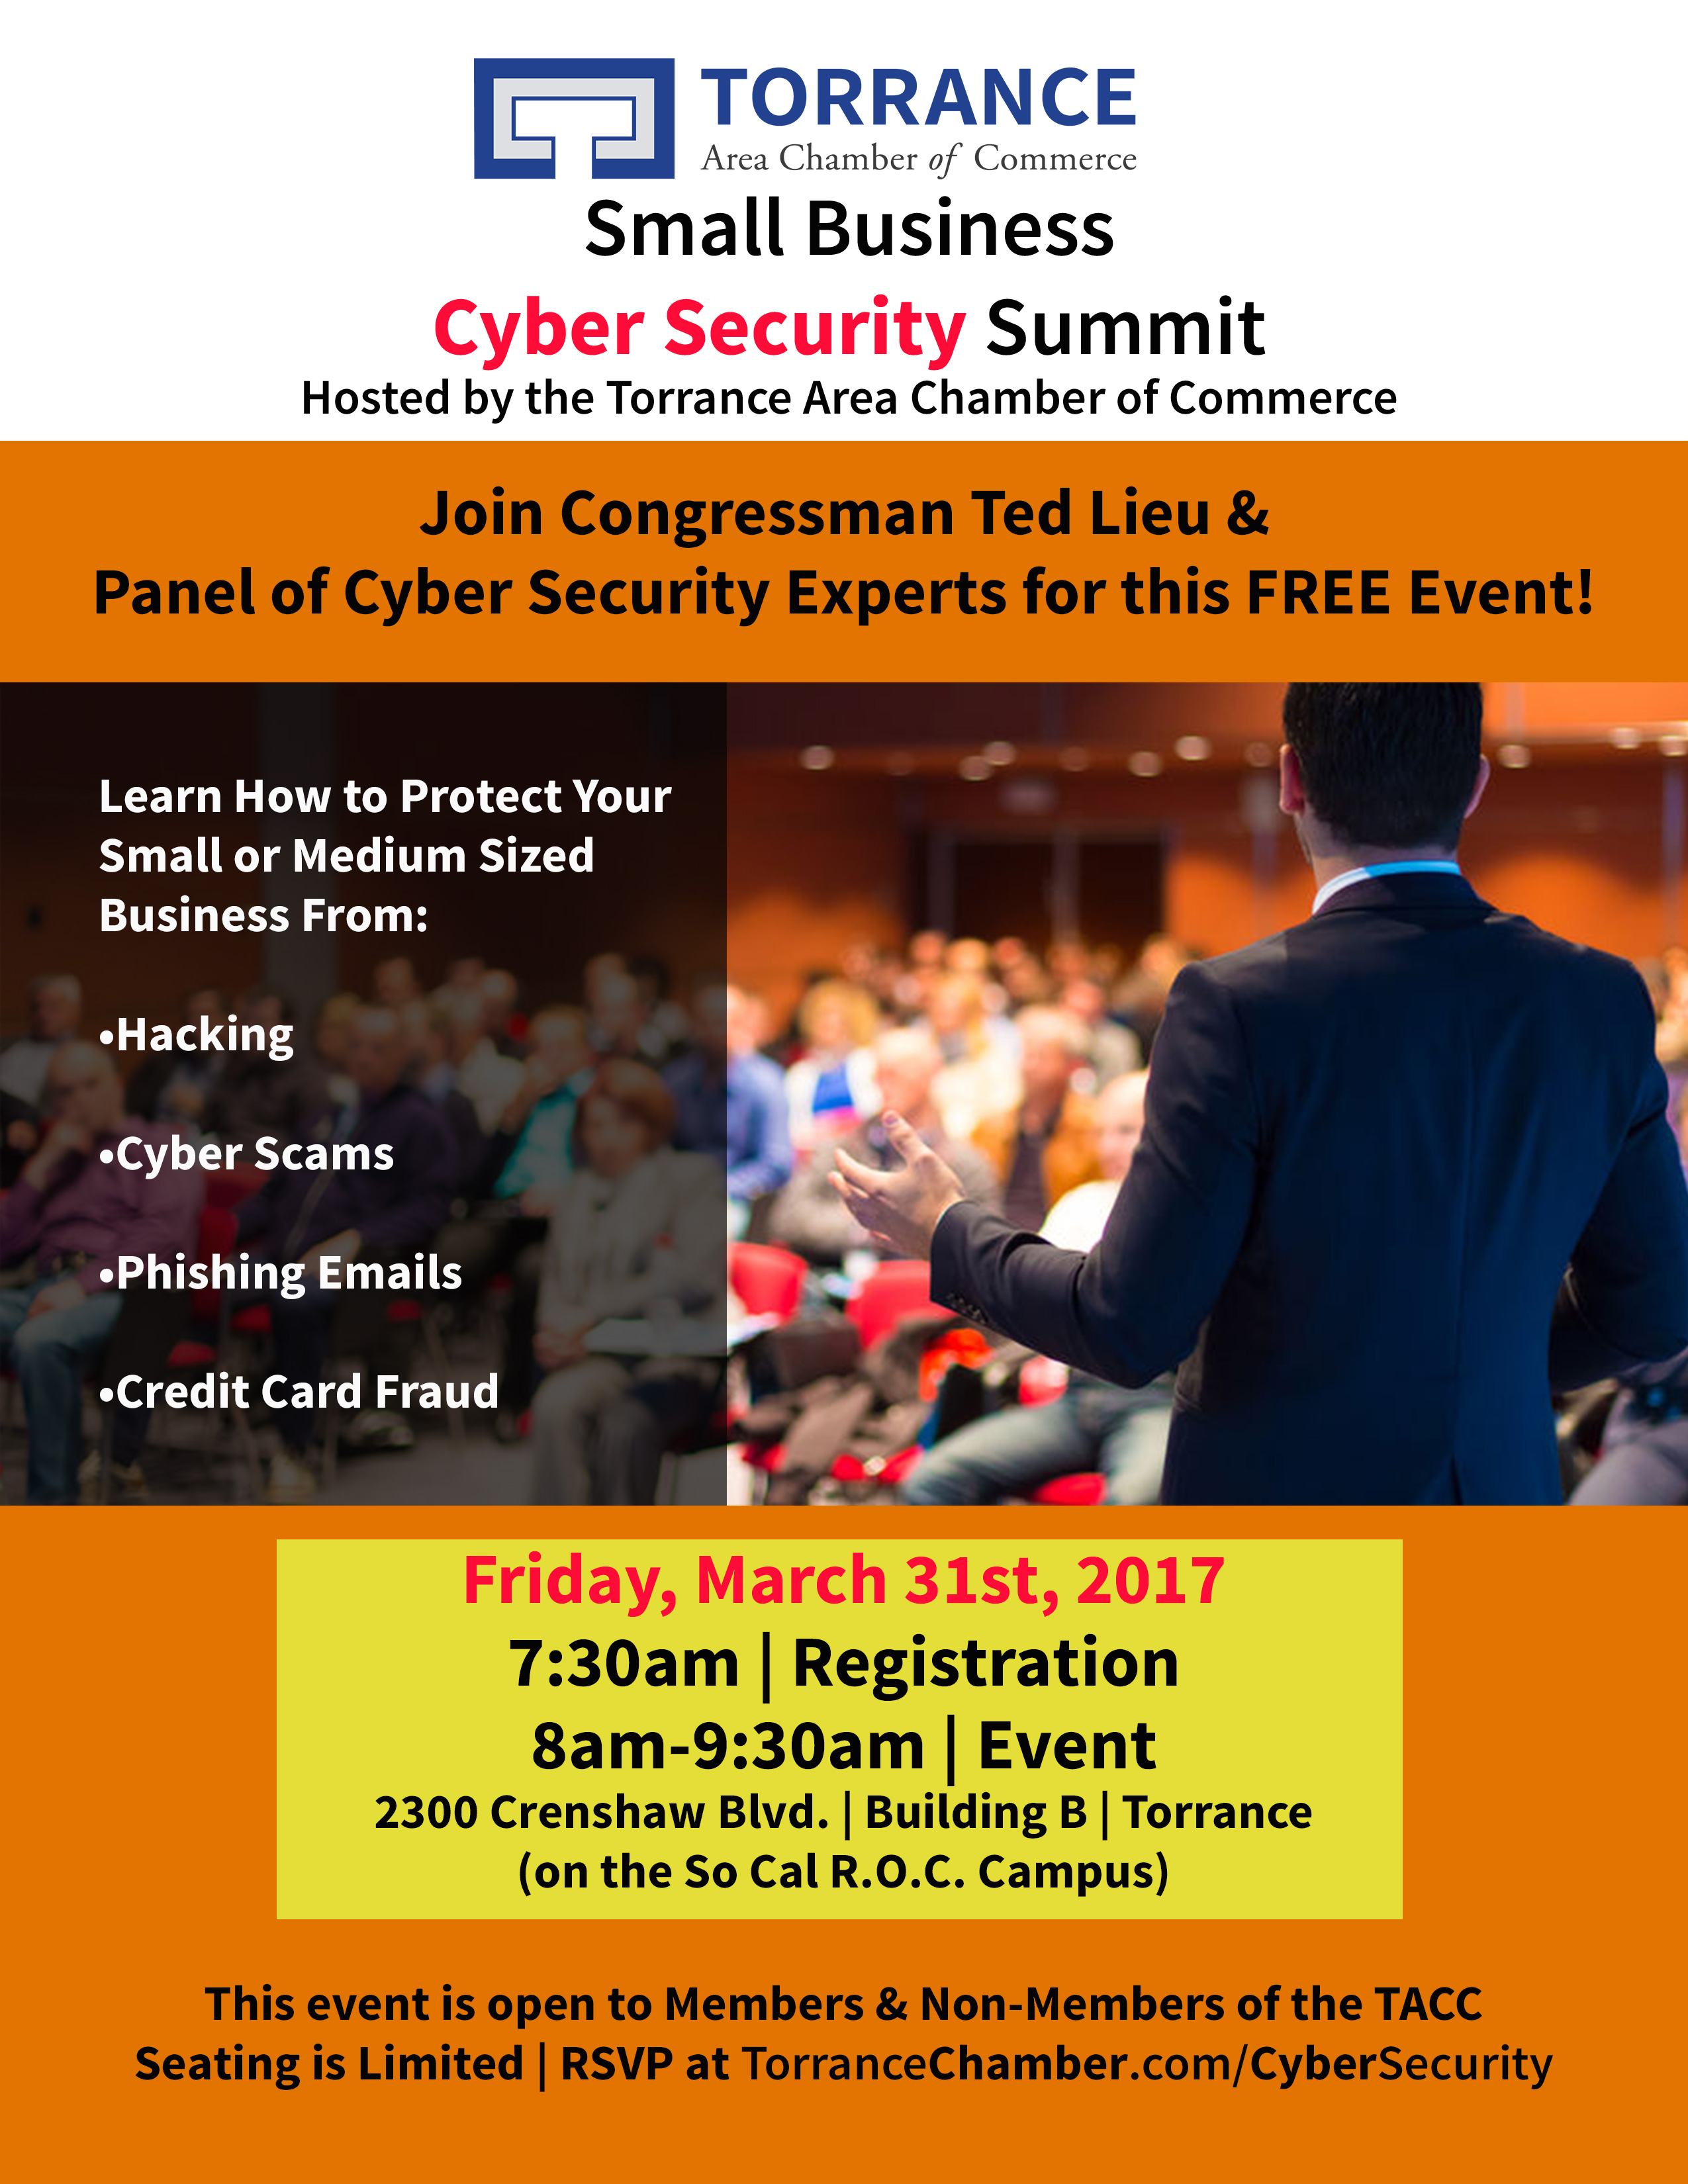 Torrance Area Chamber of Commerce Small Business Cyber Secruity Summit @ So Cal R.O.C. Campus Building B | Torrance | California | United States